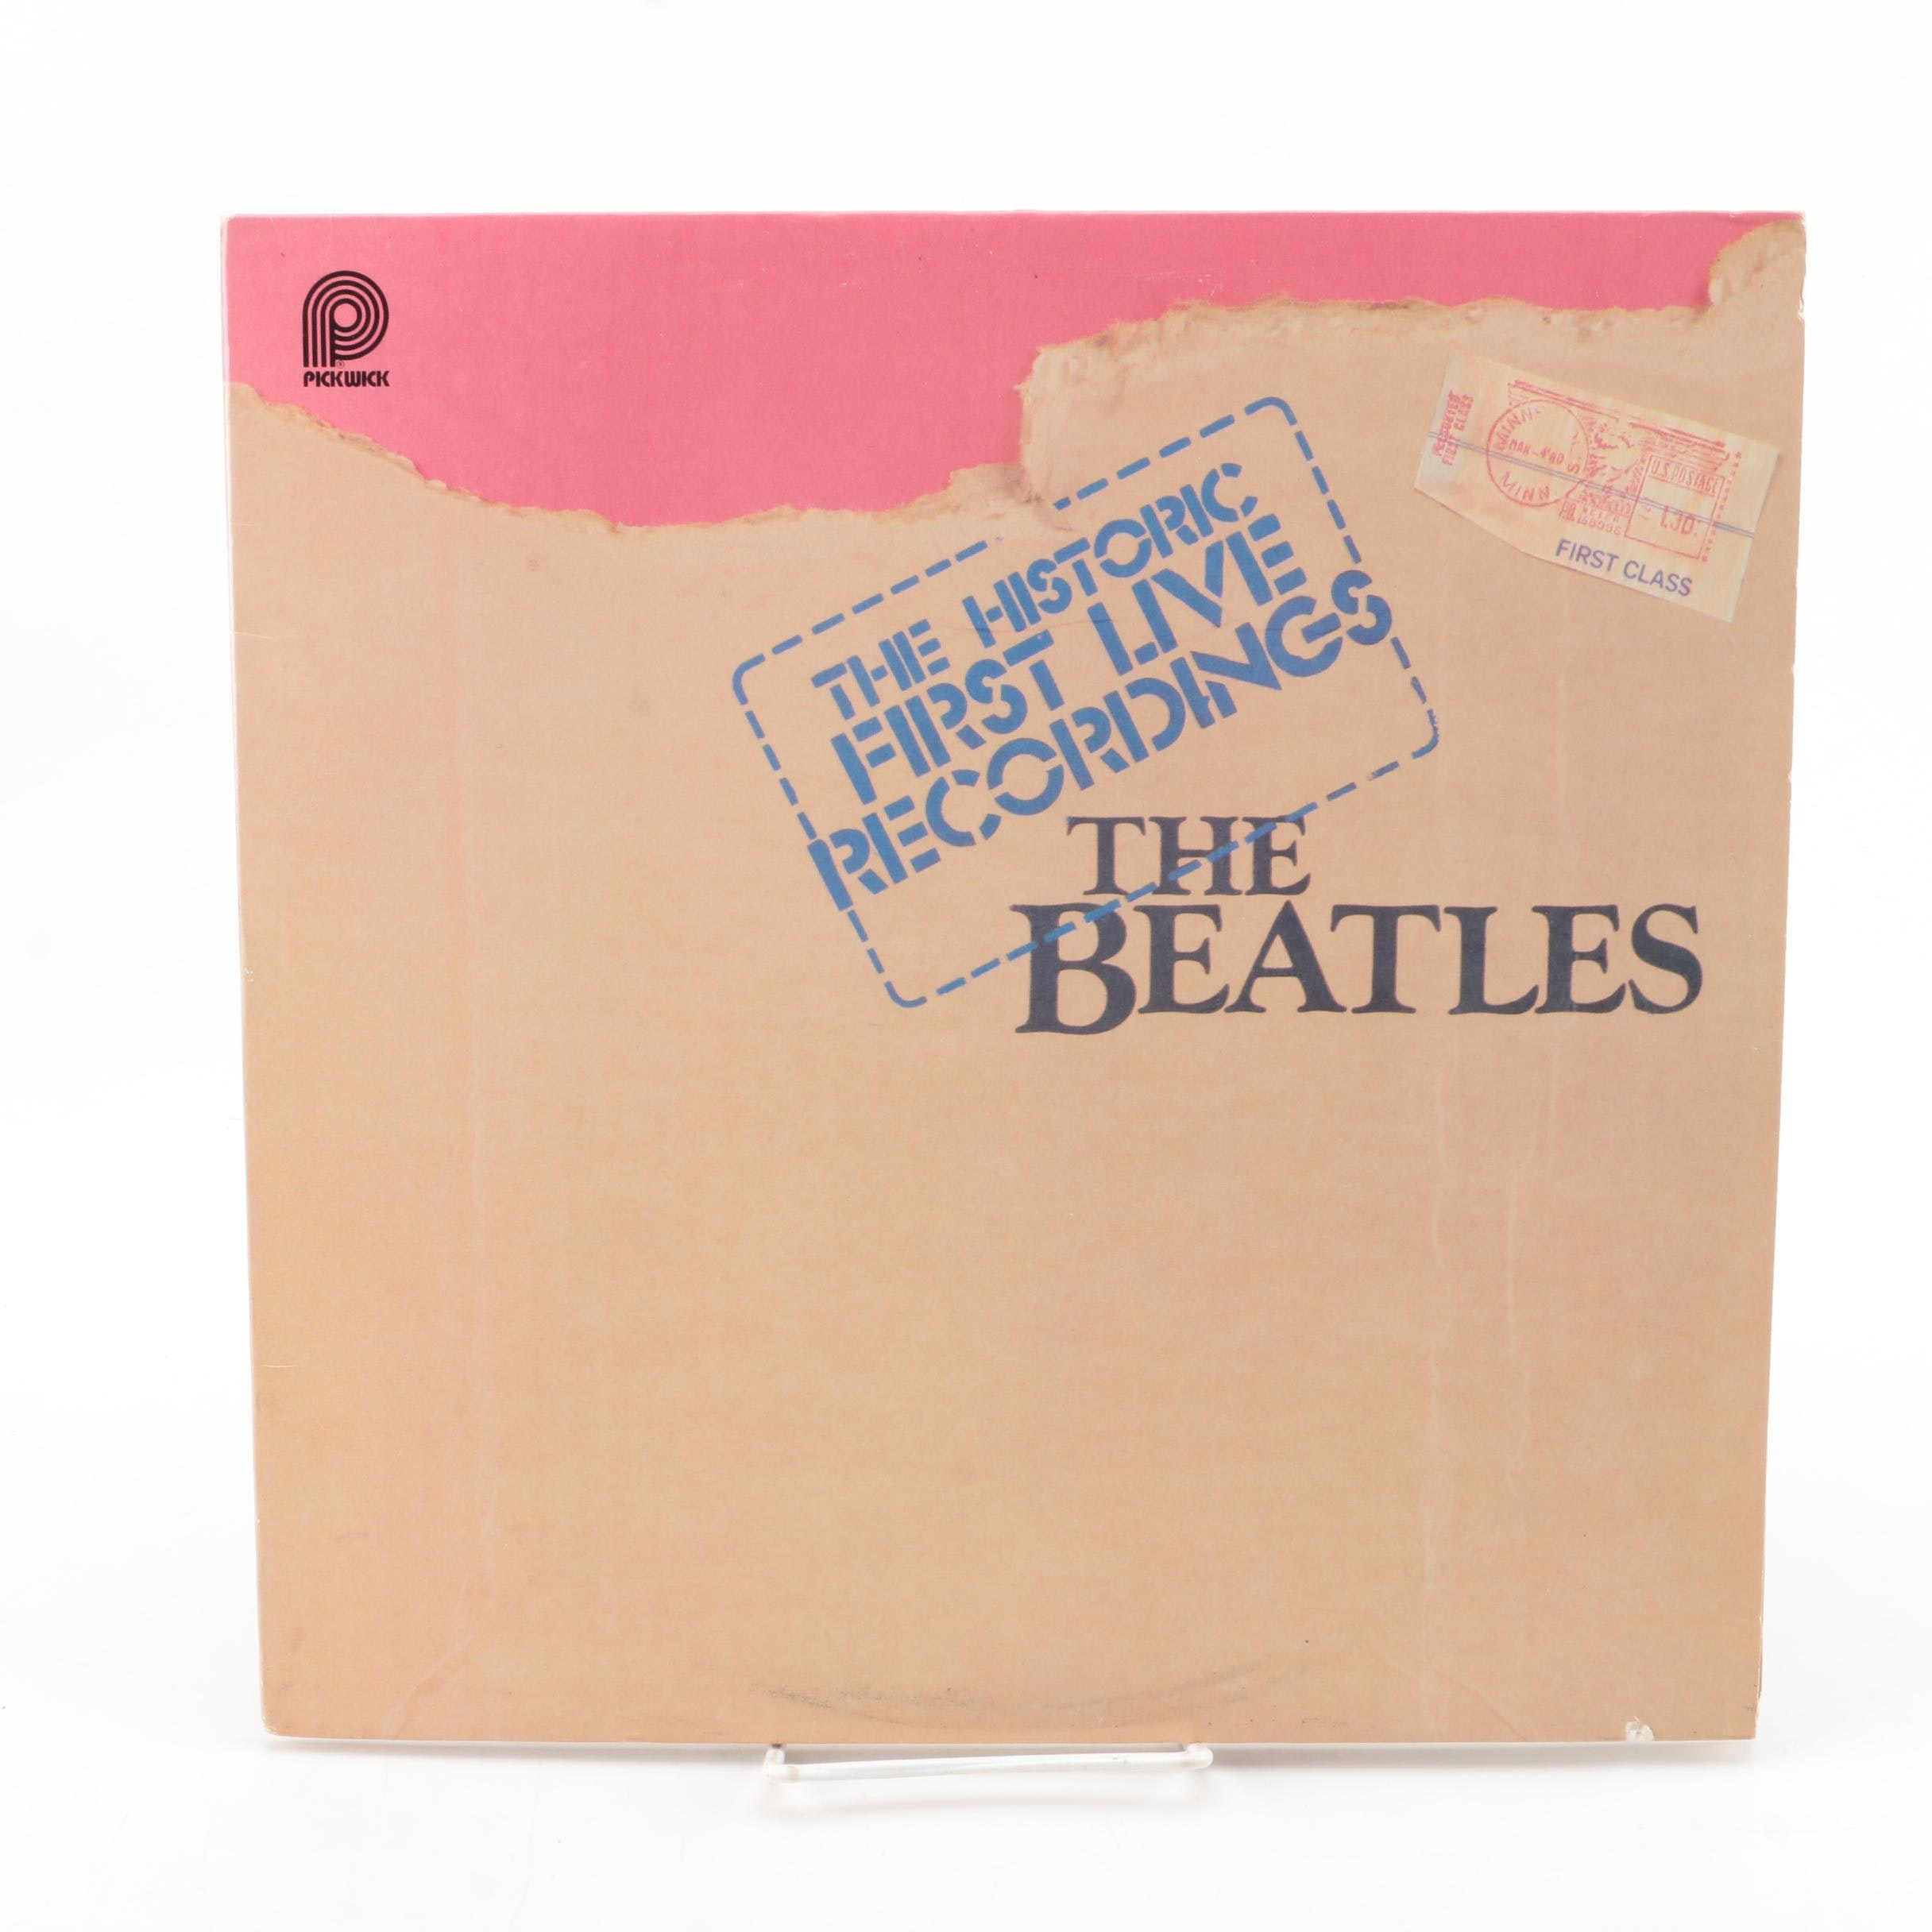 "The Beatles ""The Historic First Live Recordings"" Stereo LP Record"